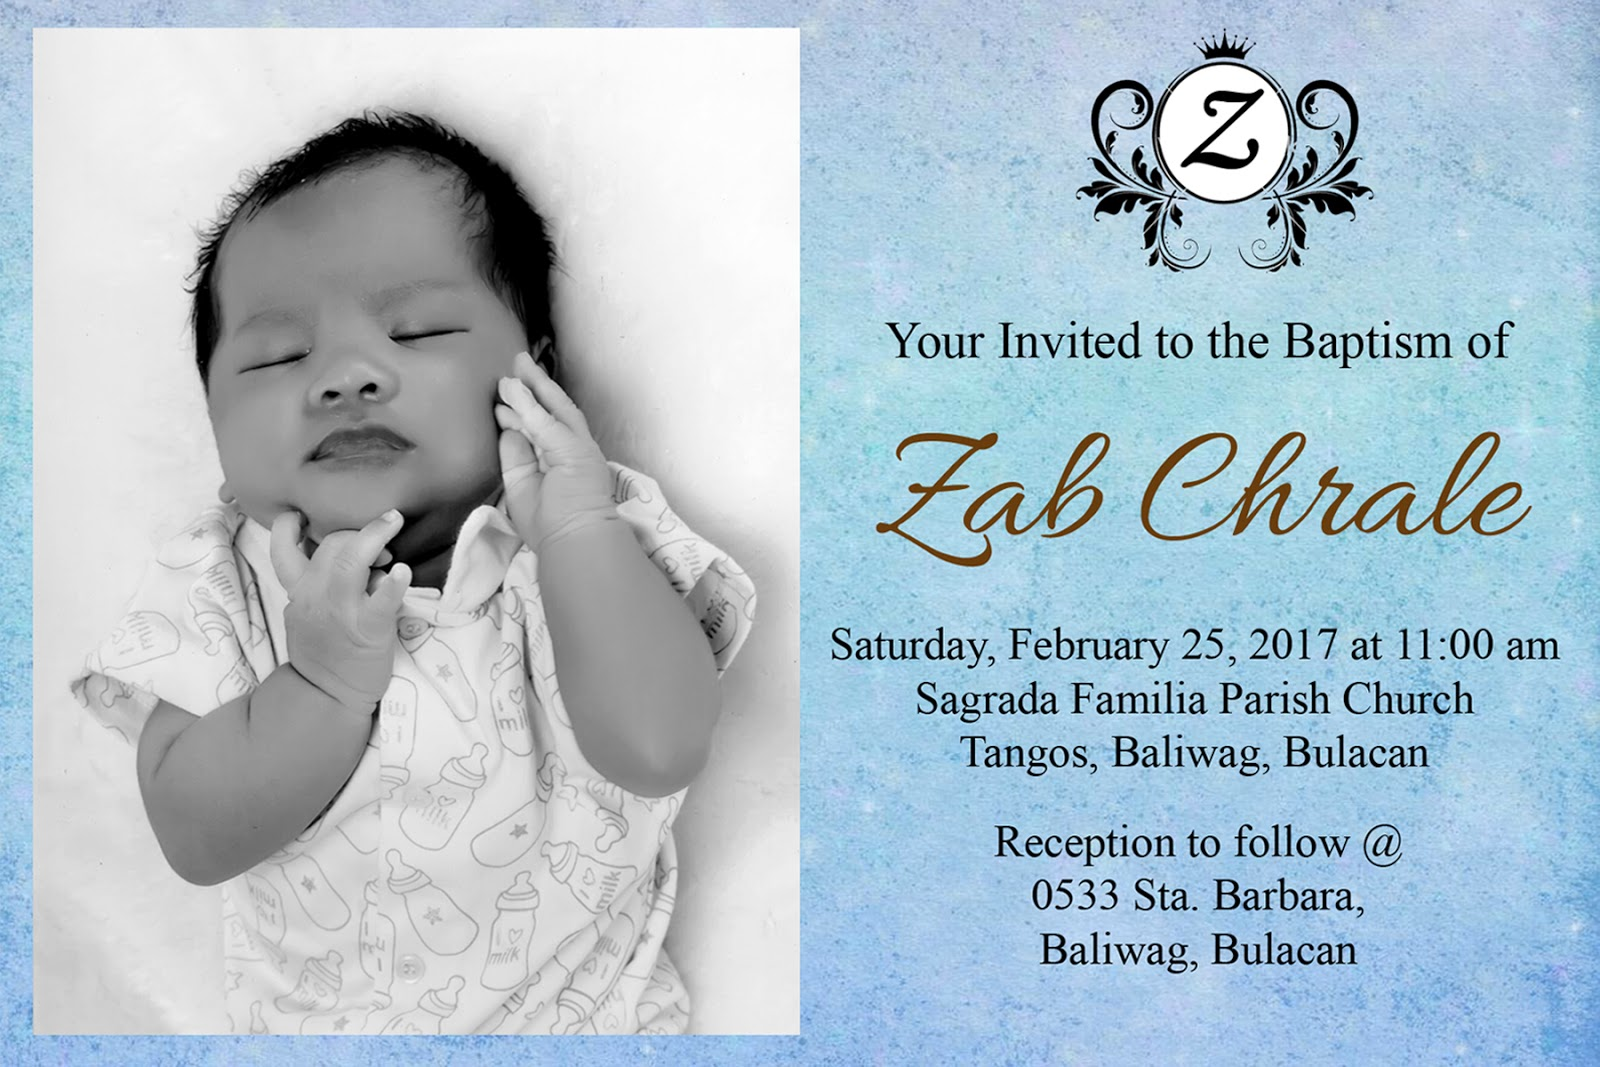 Sample invitation letter for christening free printable greeting cards elegant and simple invitation for christening get layout zab2bcopy sample invitation layouthtml sample invitation letter for christening stopboris Gallery